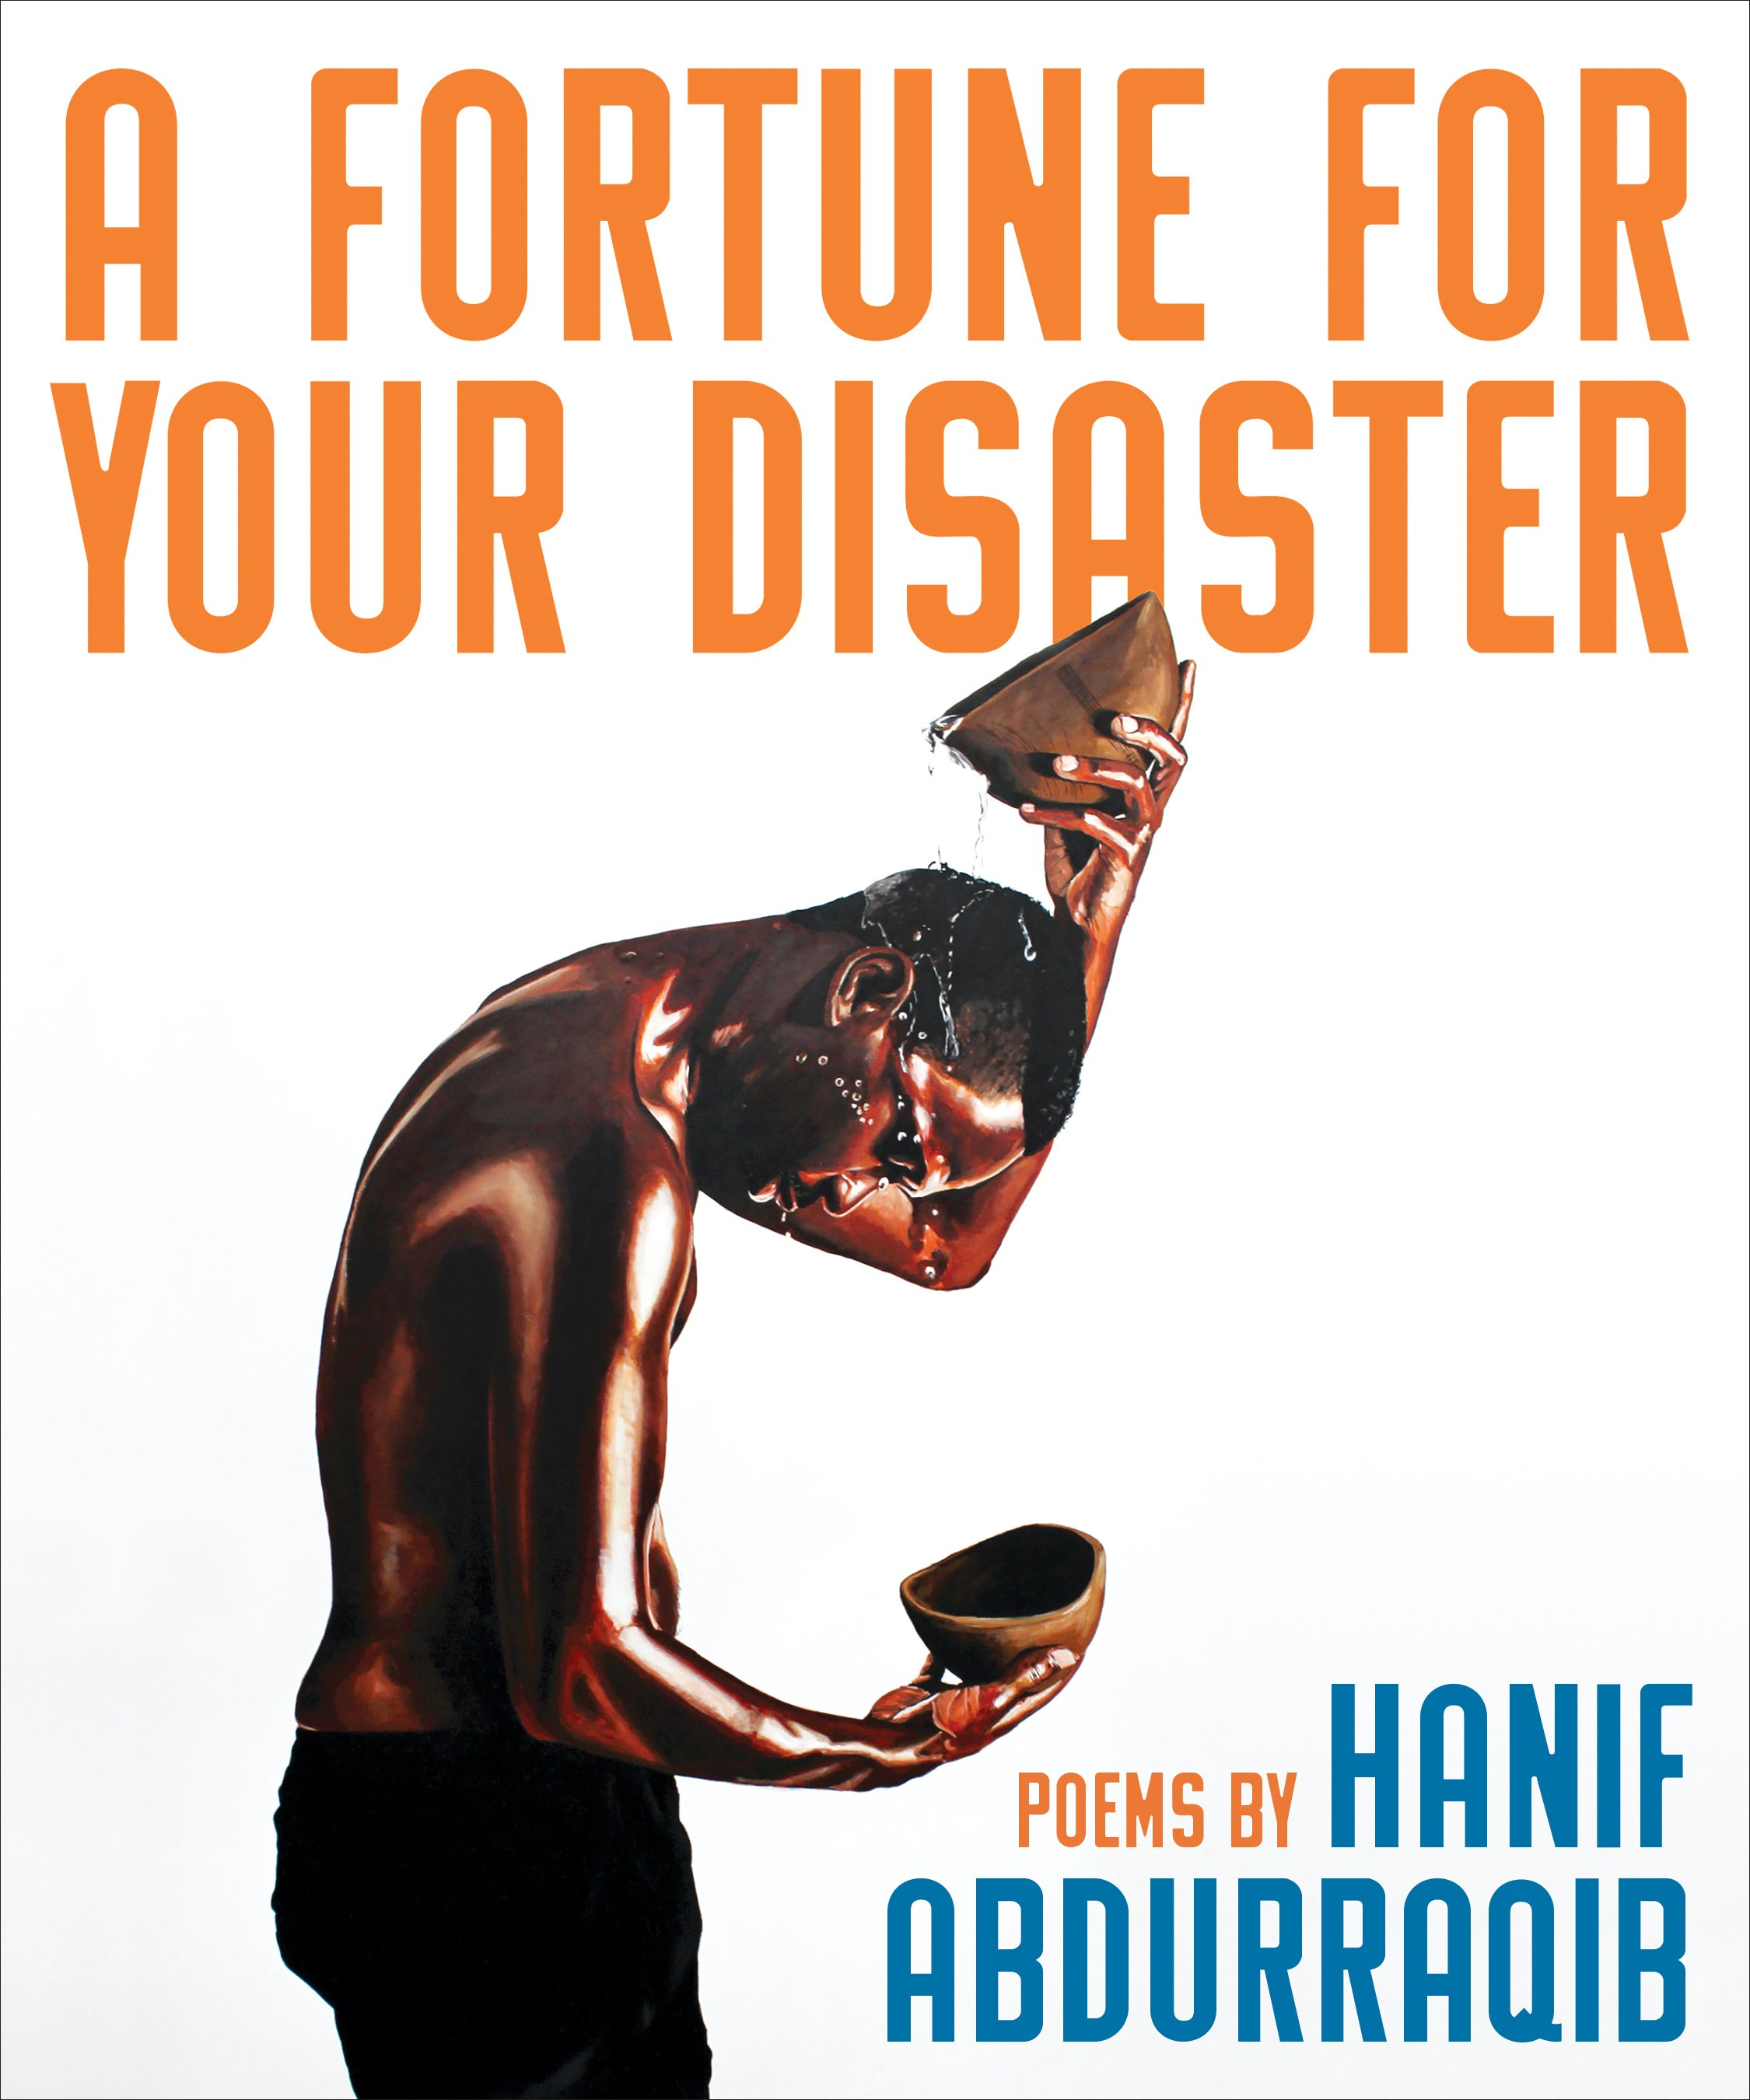 A-Fortune-for-Your-Disaster-Cover-RGB.jpg